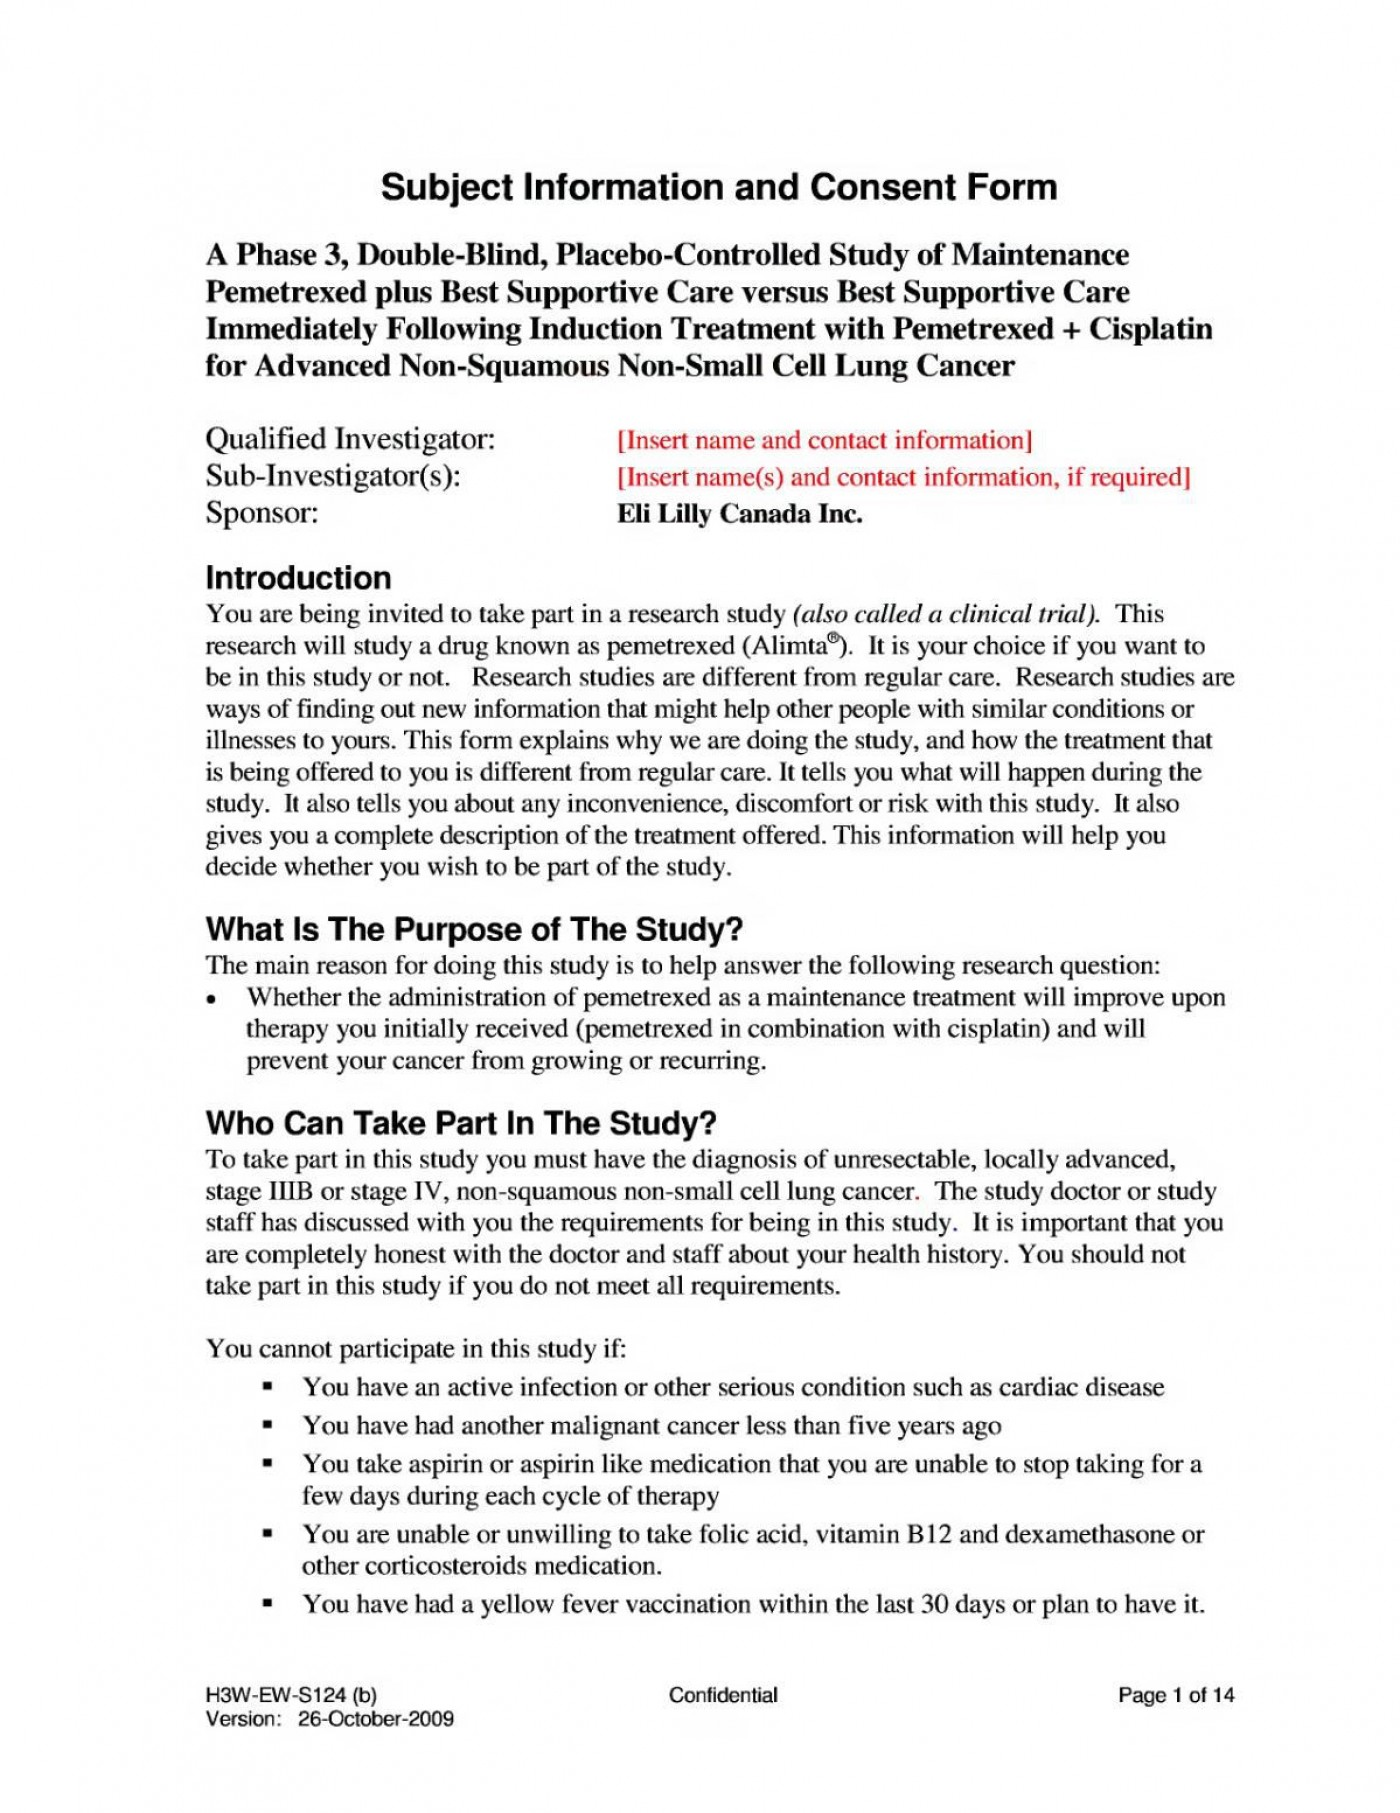 007 Awful Medical Treatment Authorization And Consent Form Template Idea 1400